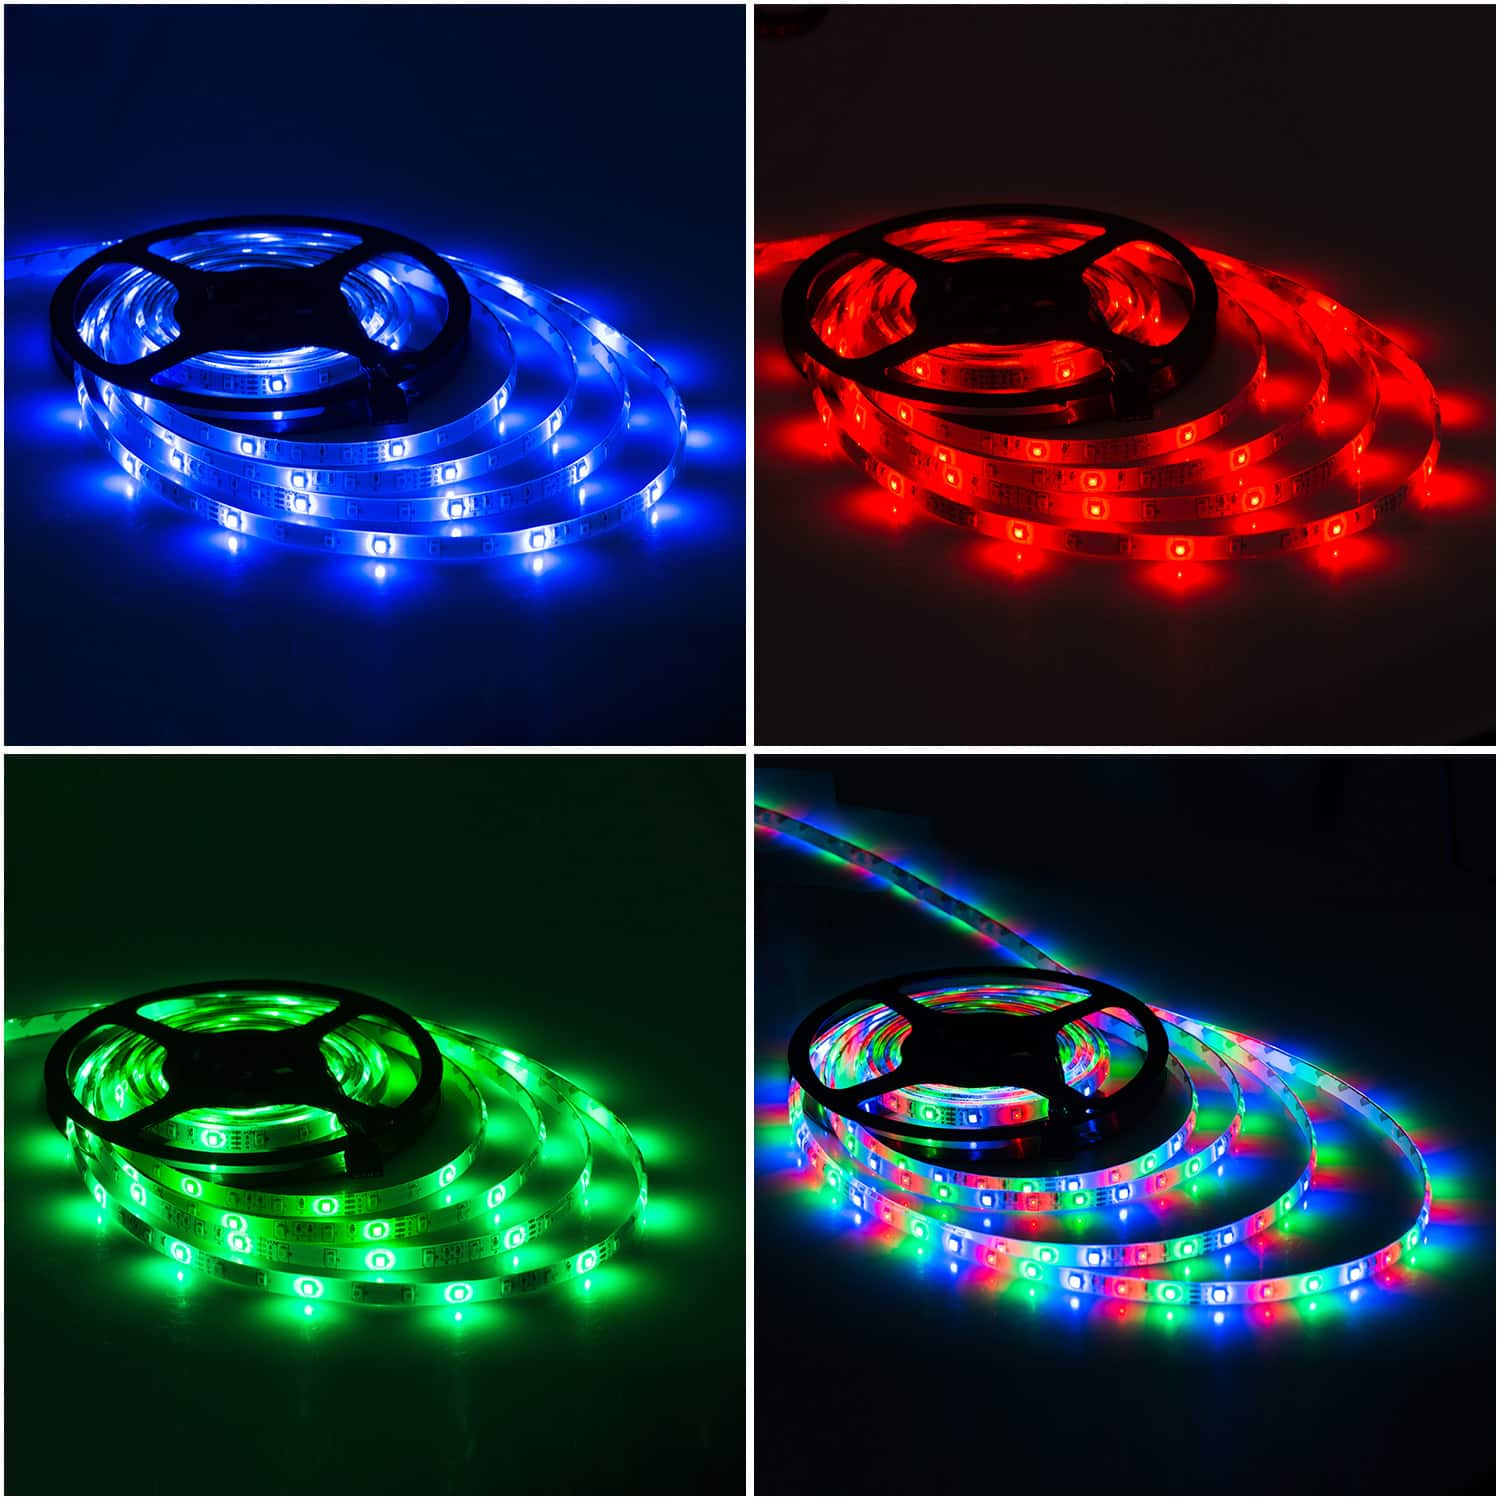 LED light strip with remote controller and power supply for $15.99